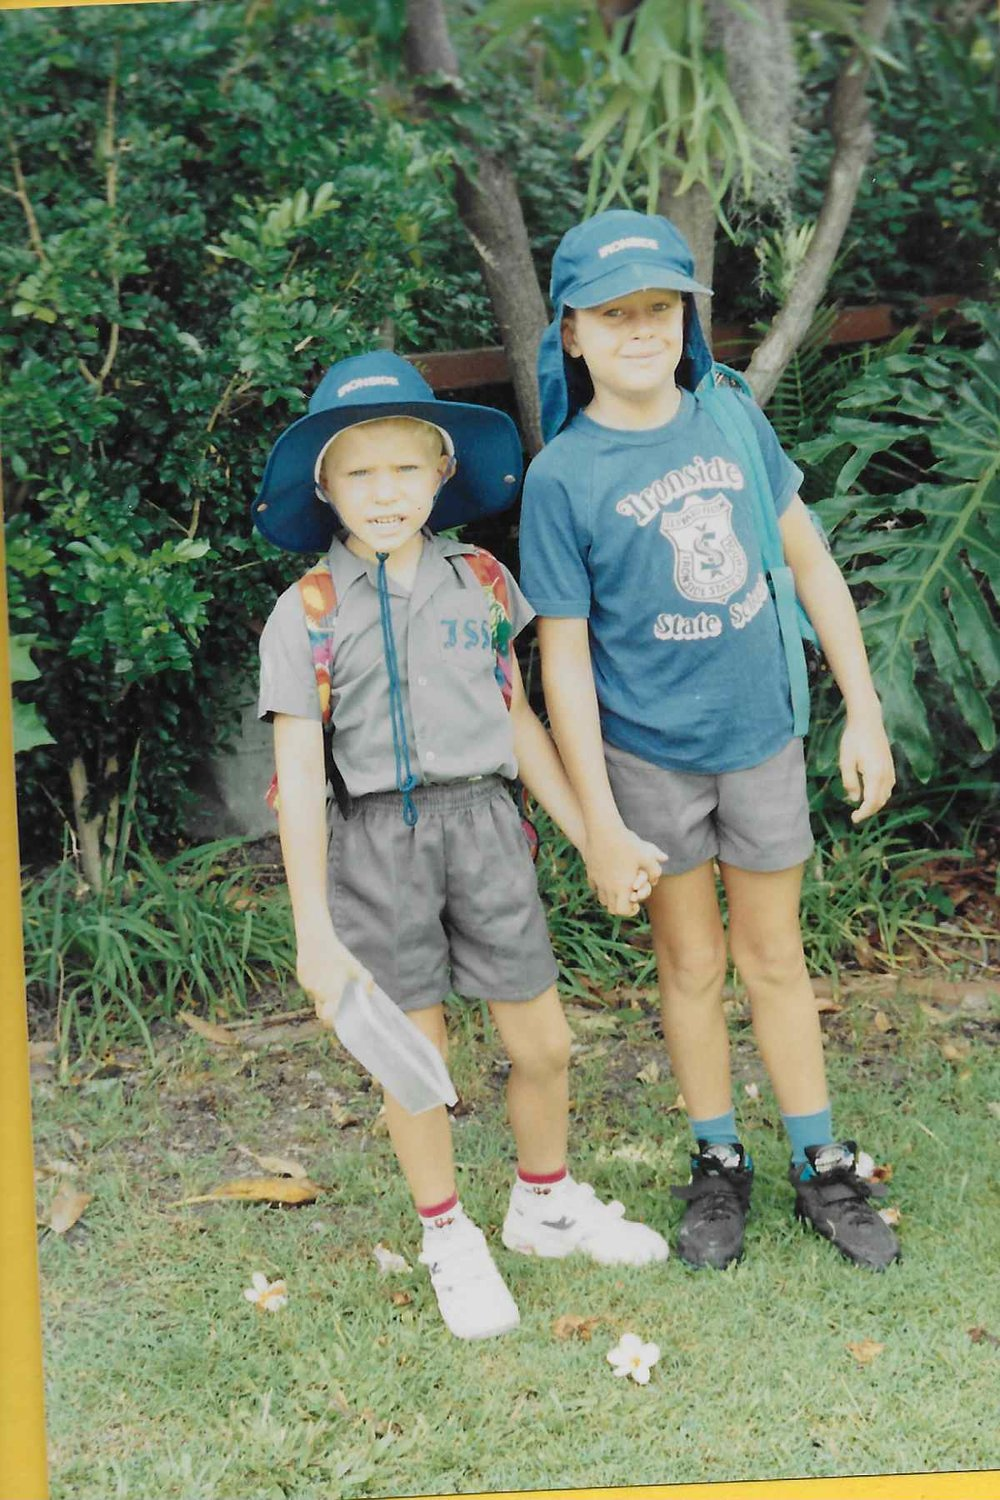 Nicholas (left) with his brother, Nathanael, in 1994.